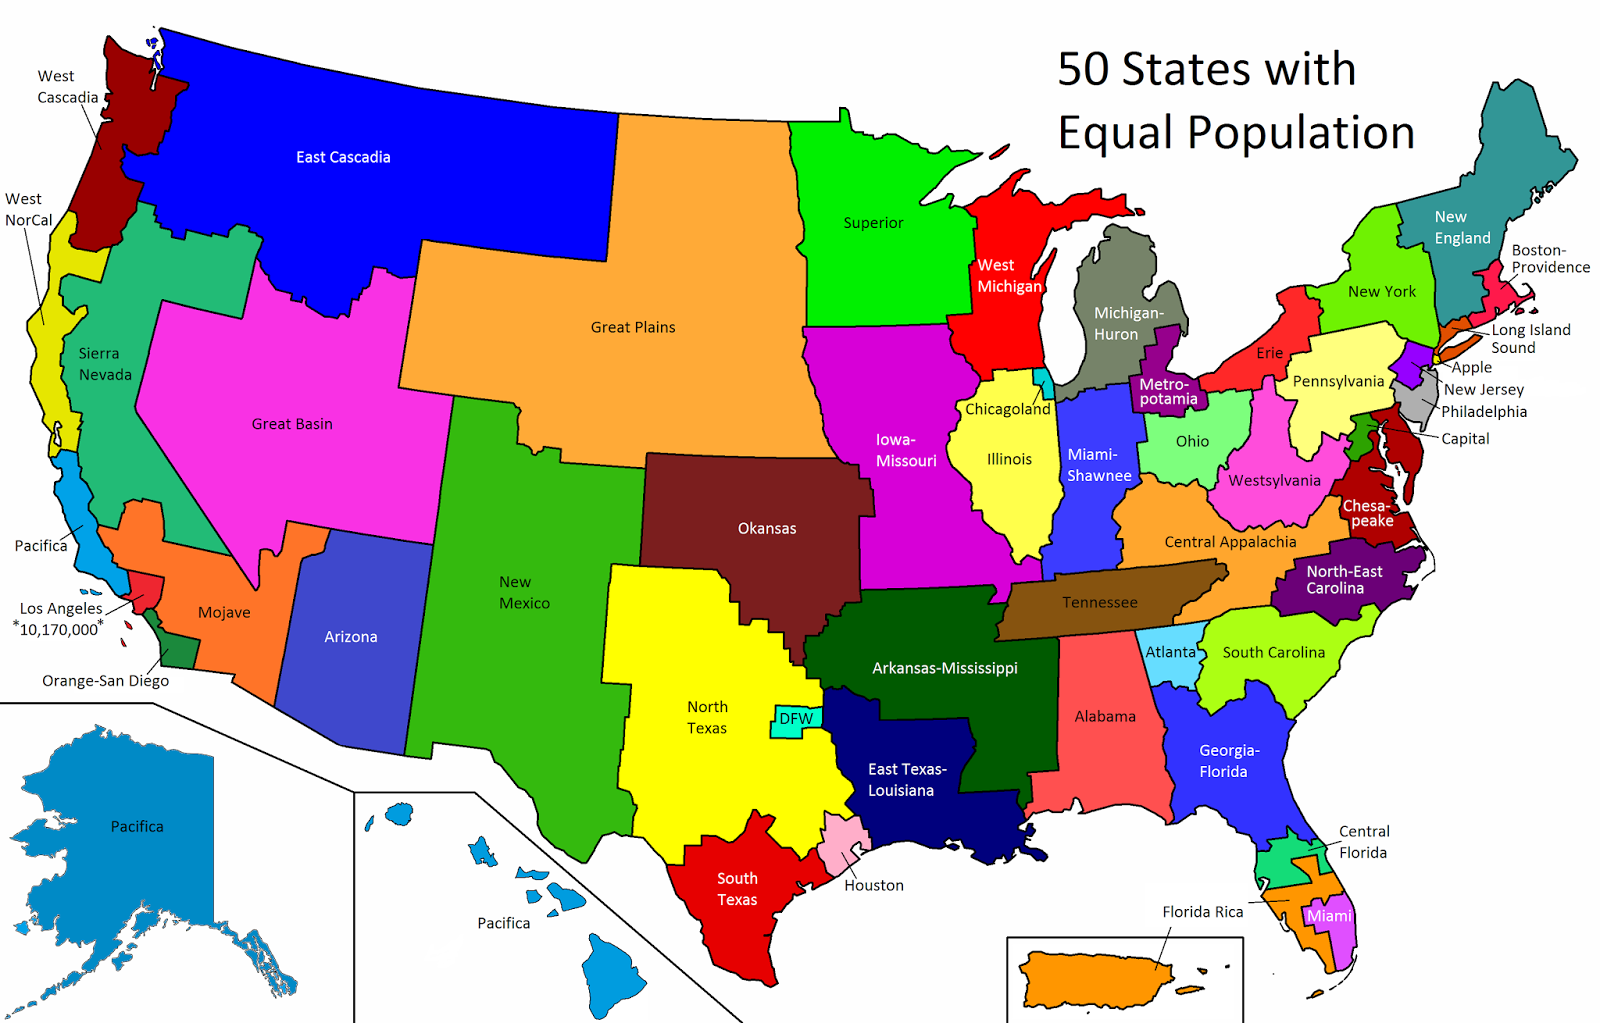 United States: 50 States with Equal Population